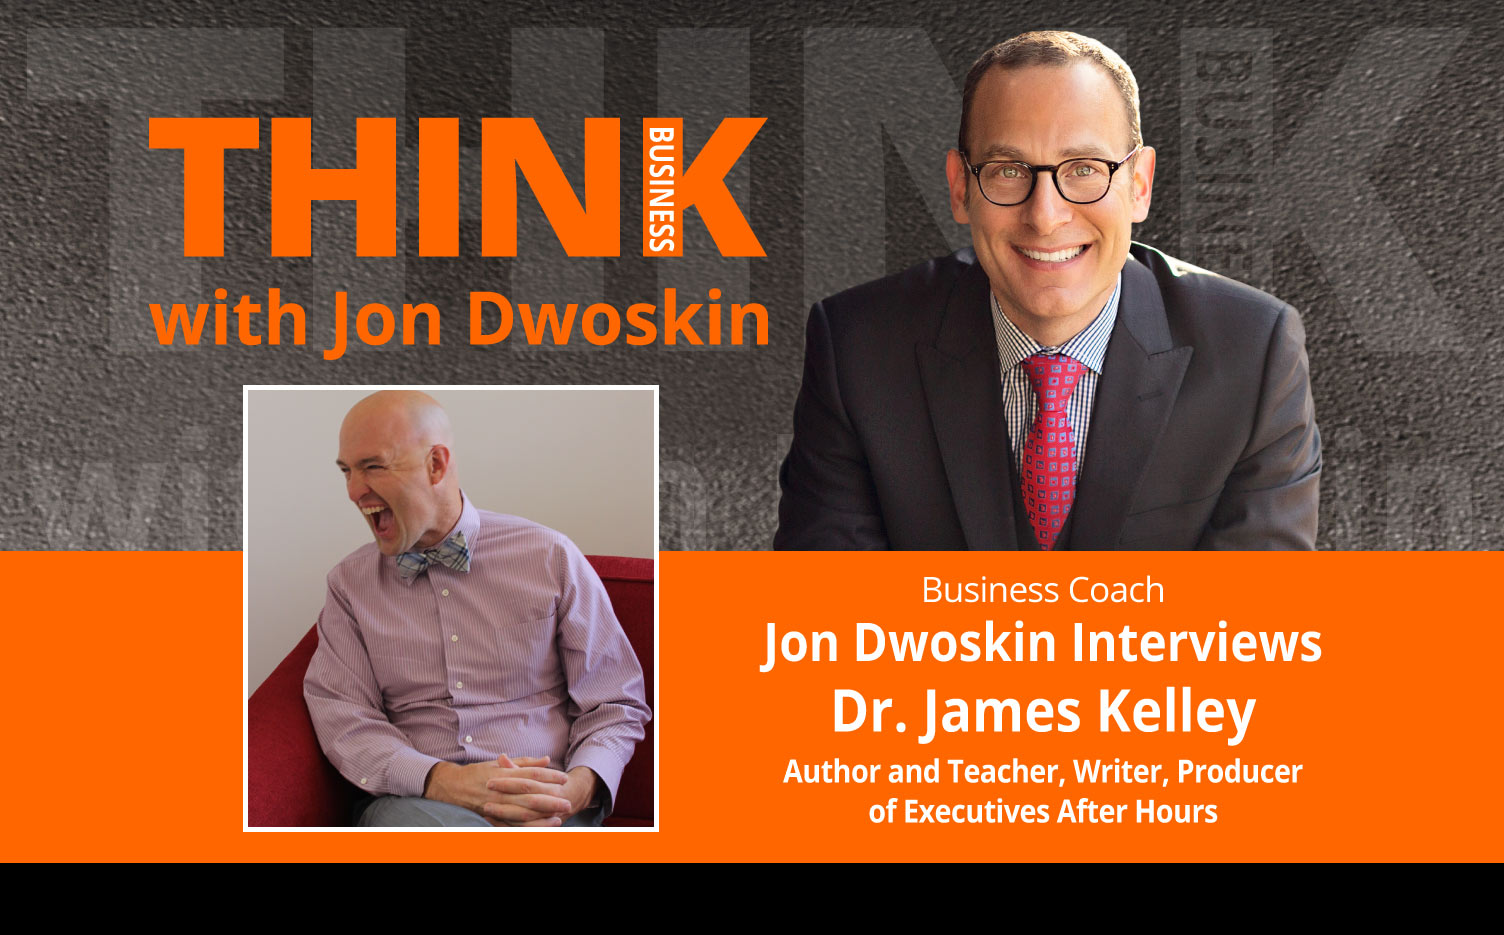 THINK Business Podcast: Jon Dwoskin Interviews Dr. James Kelley, Author and Teacher, Writer, Producer of Executives After Hours